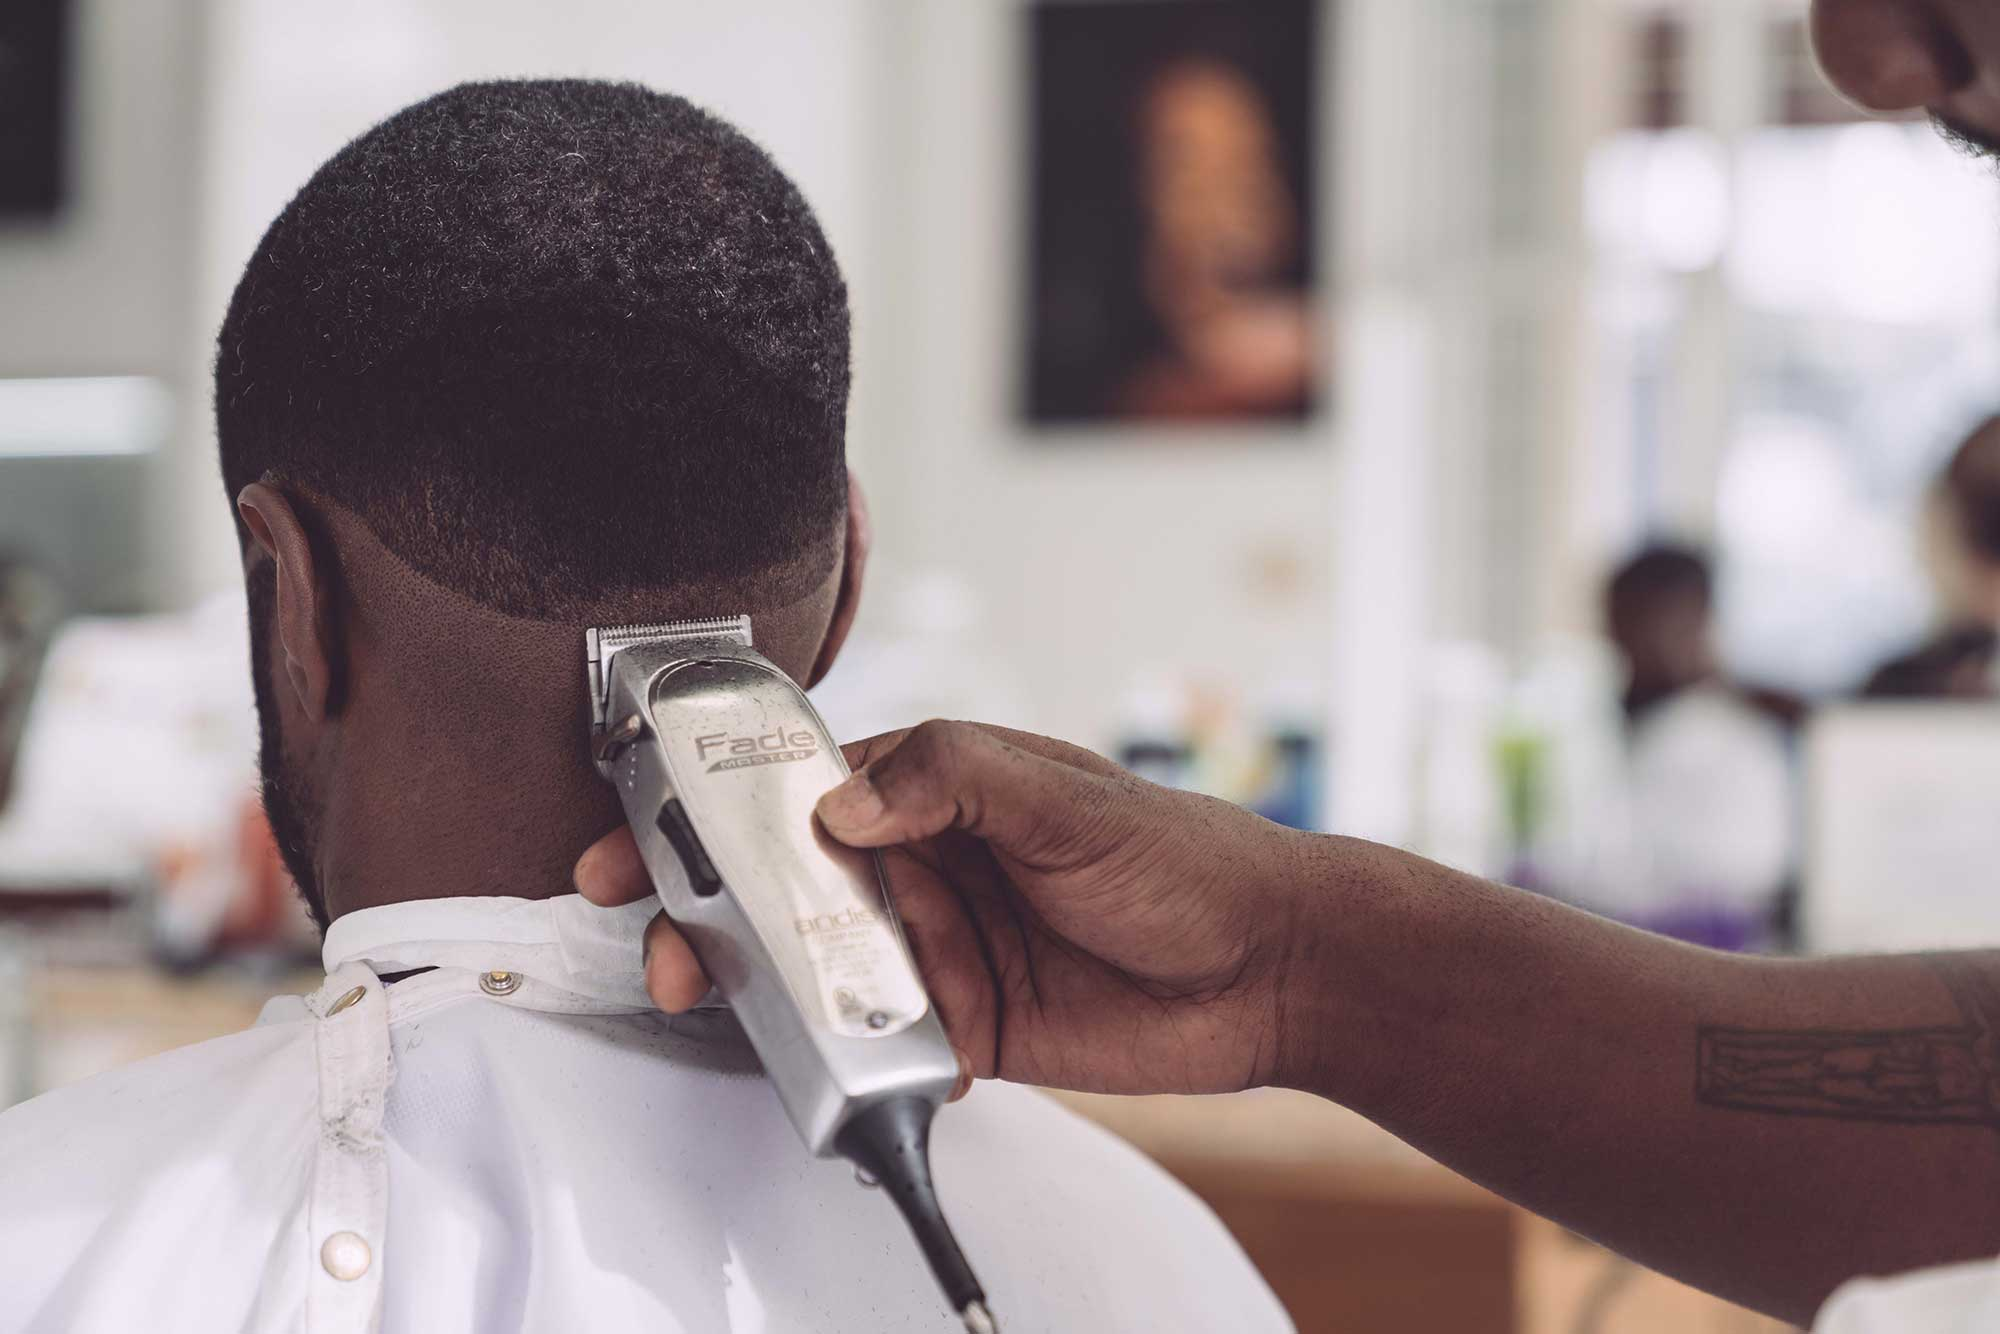 Guy getting a haircut with clippers